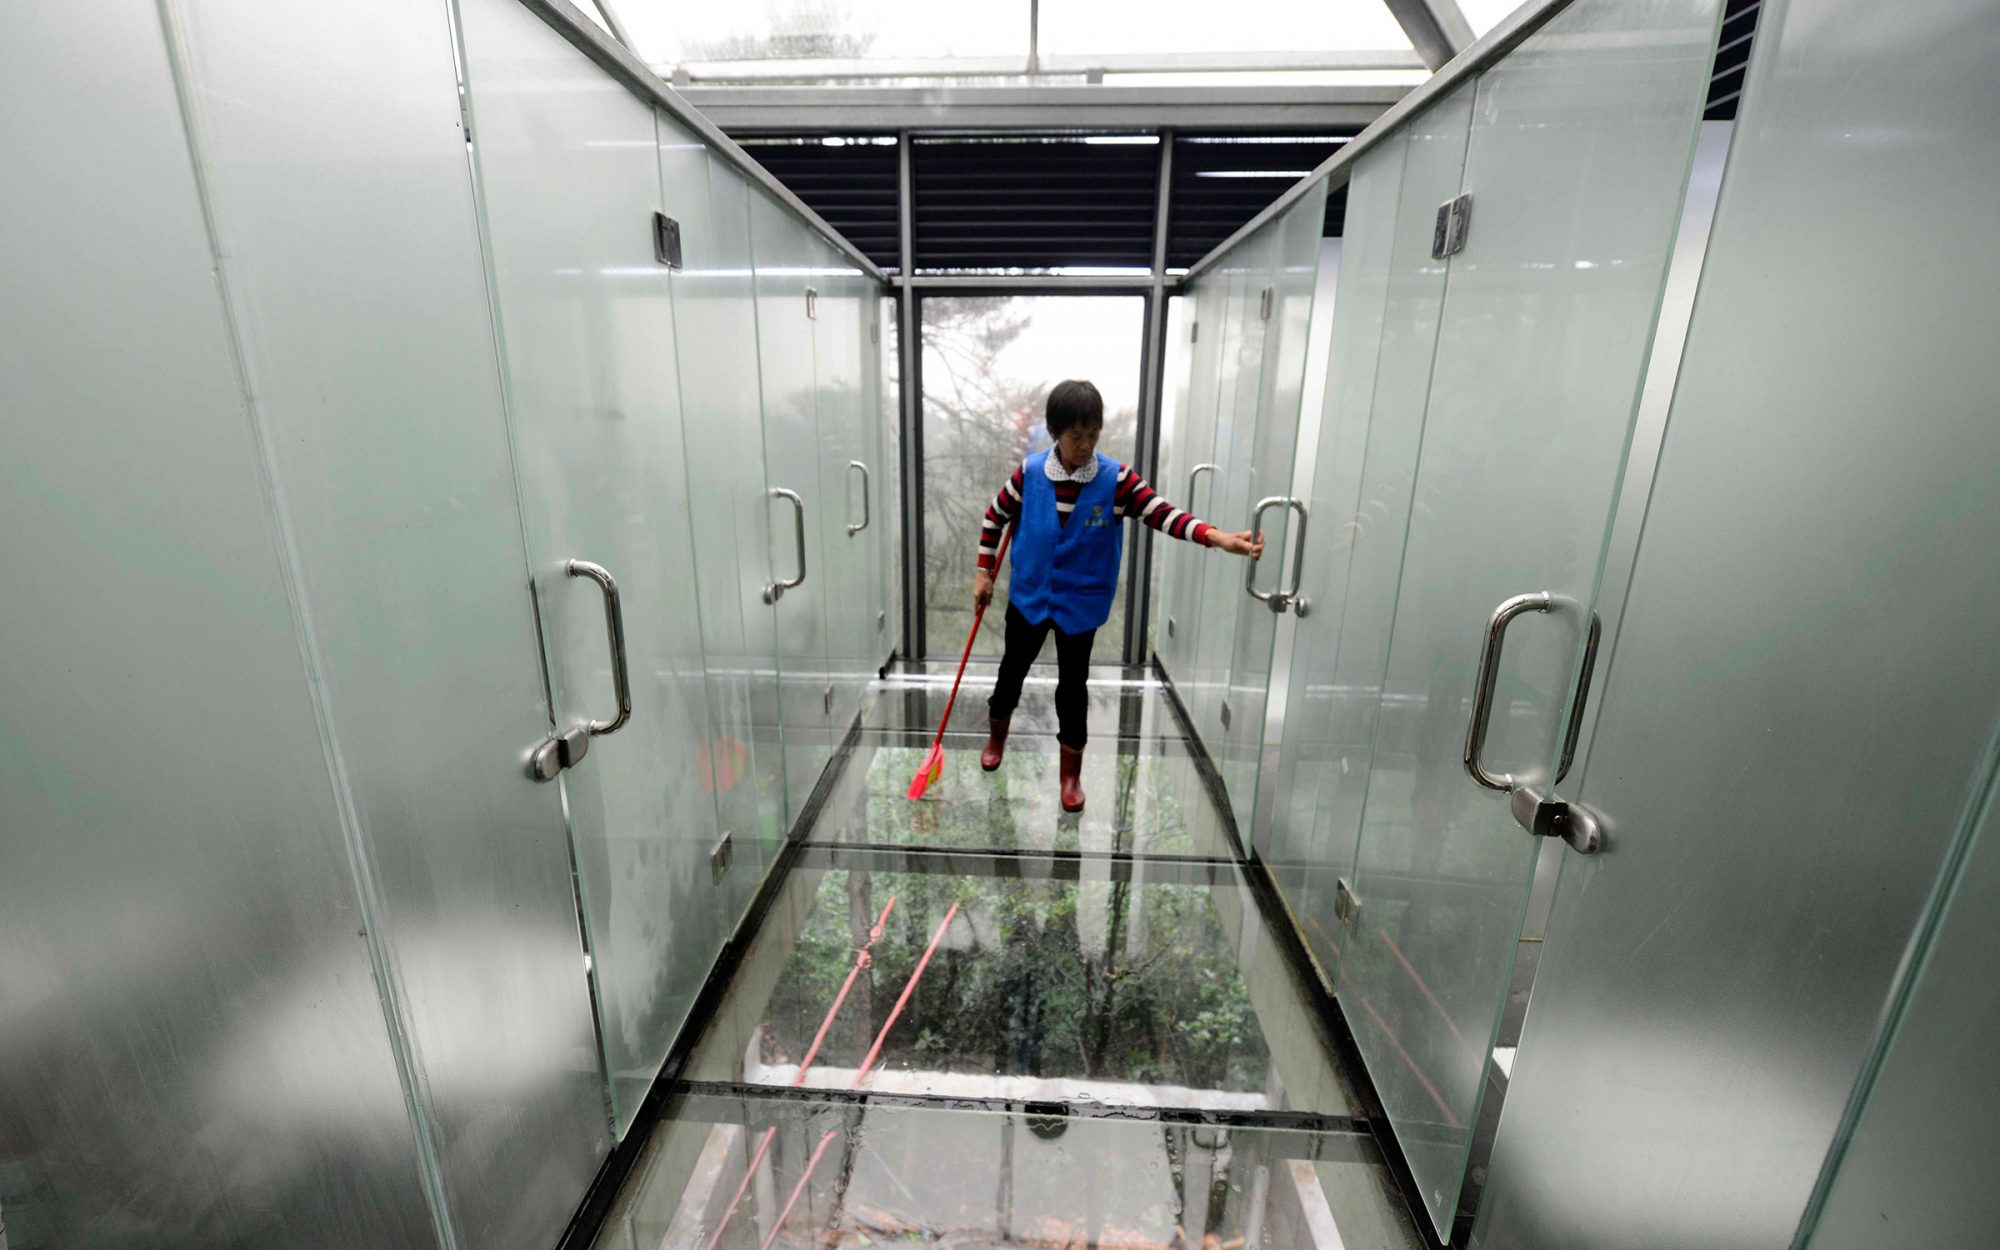 Glass Bathroom in China